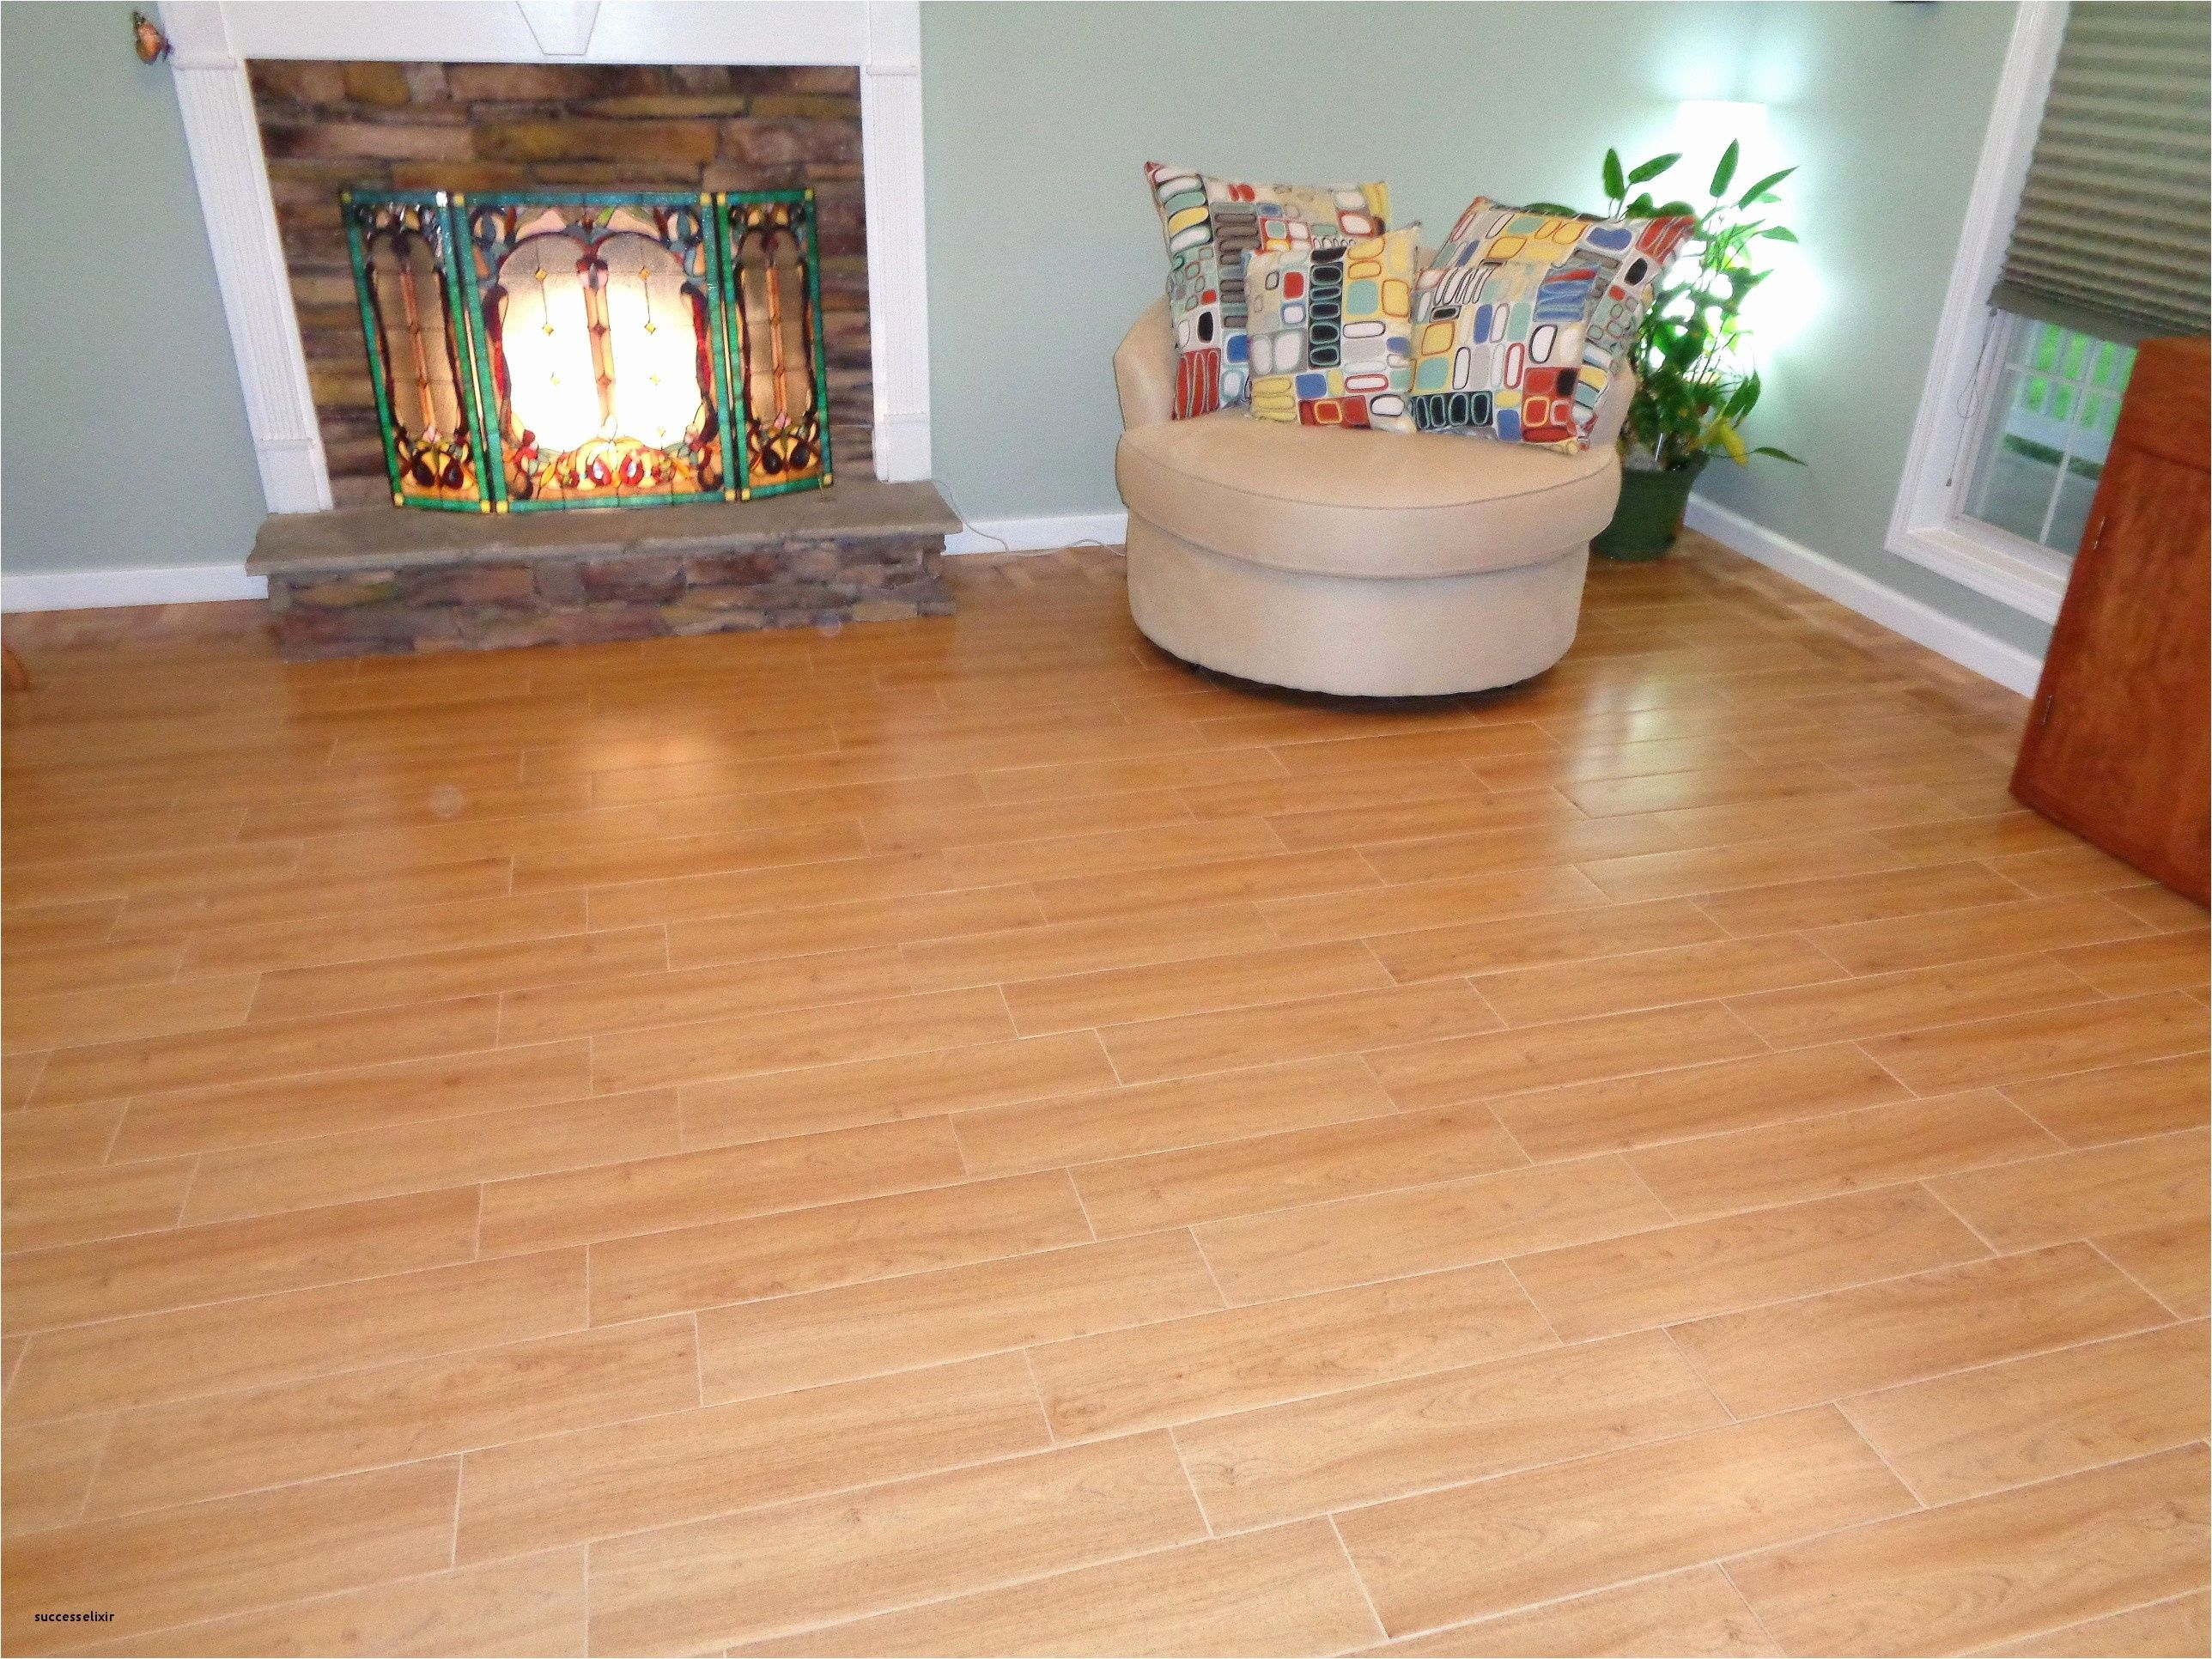 Bamboo Flooring Less Advantageous Than Vct Tile Flooring